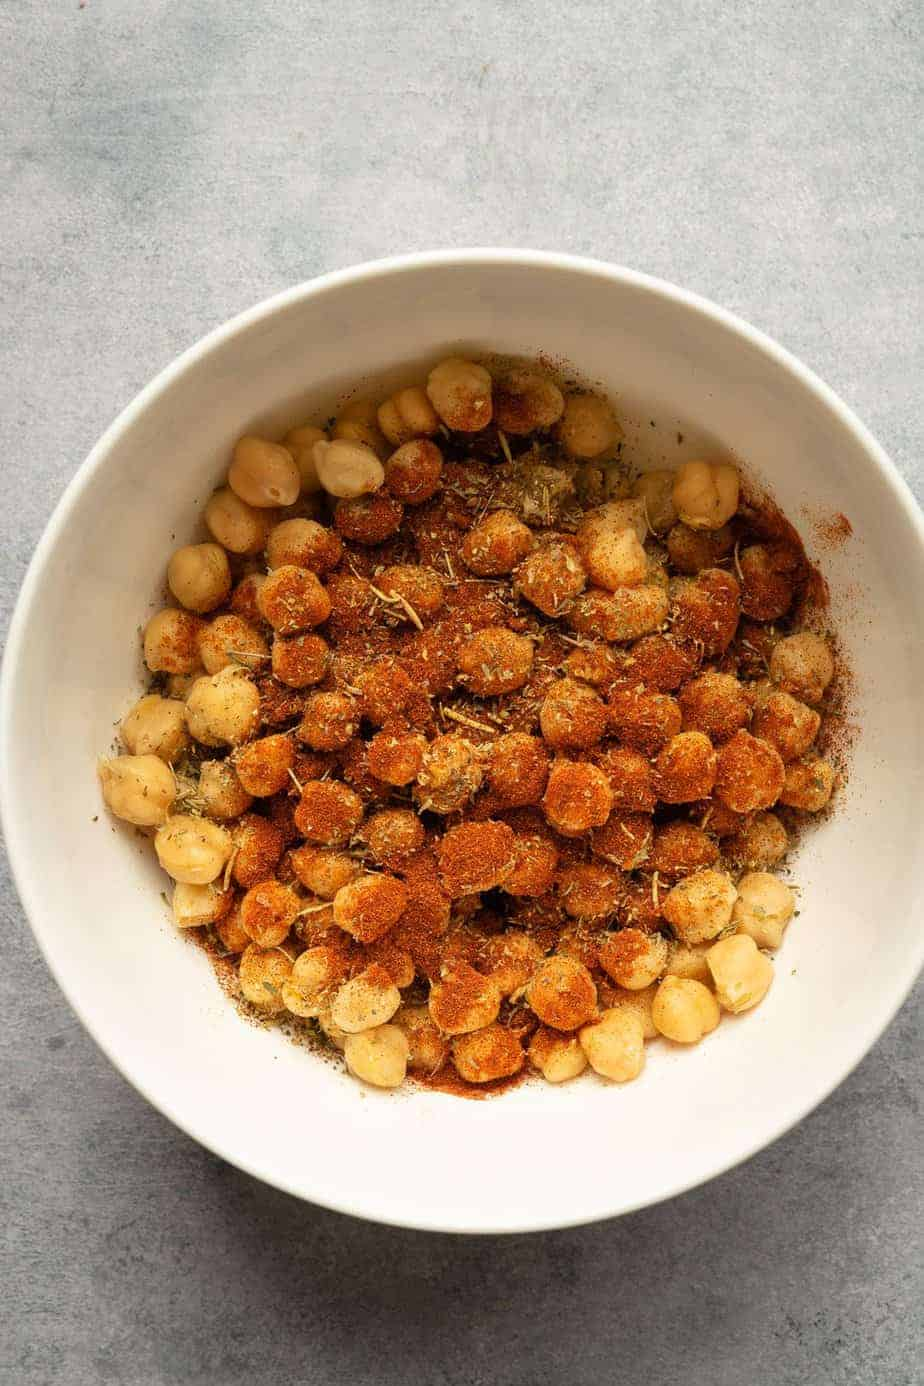 ingredients to make crispy chickpeas in the air fryer in a bowl before tossing.